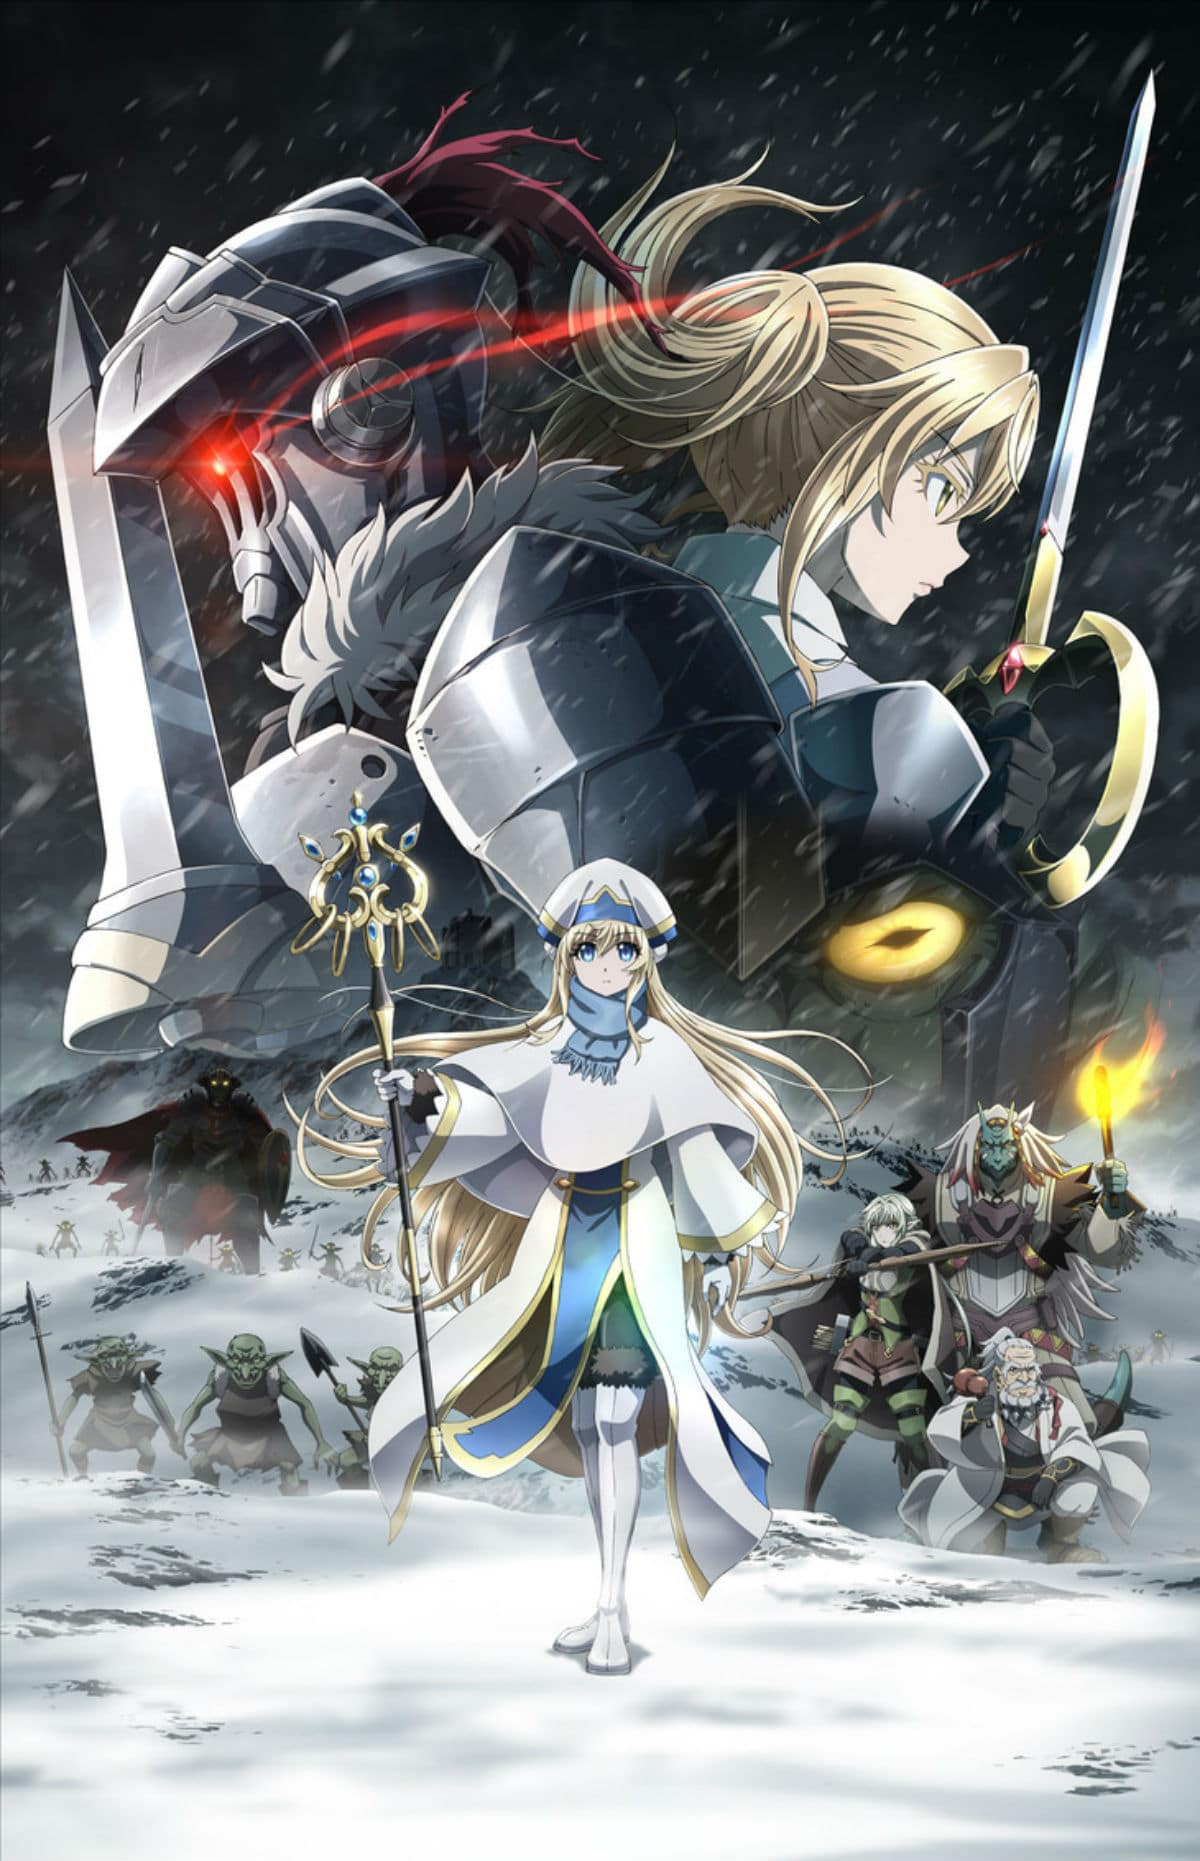 Goblin Slayer Goblin's Crown Movie Key Visual